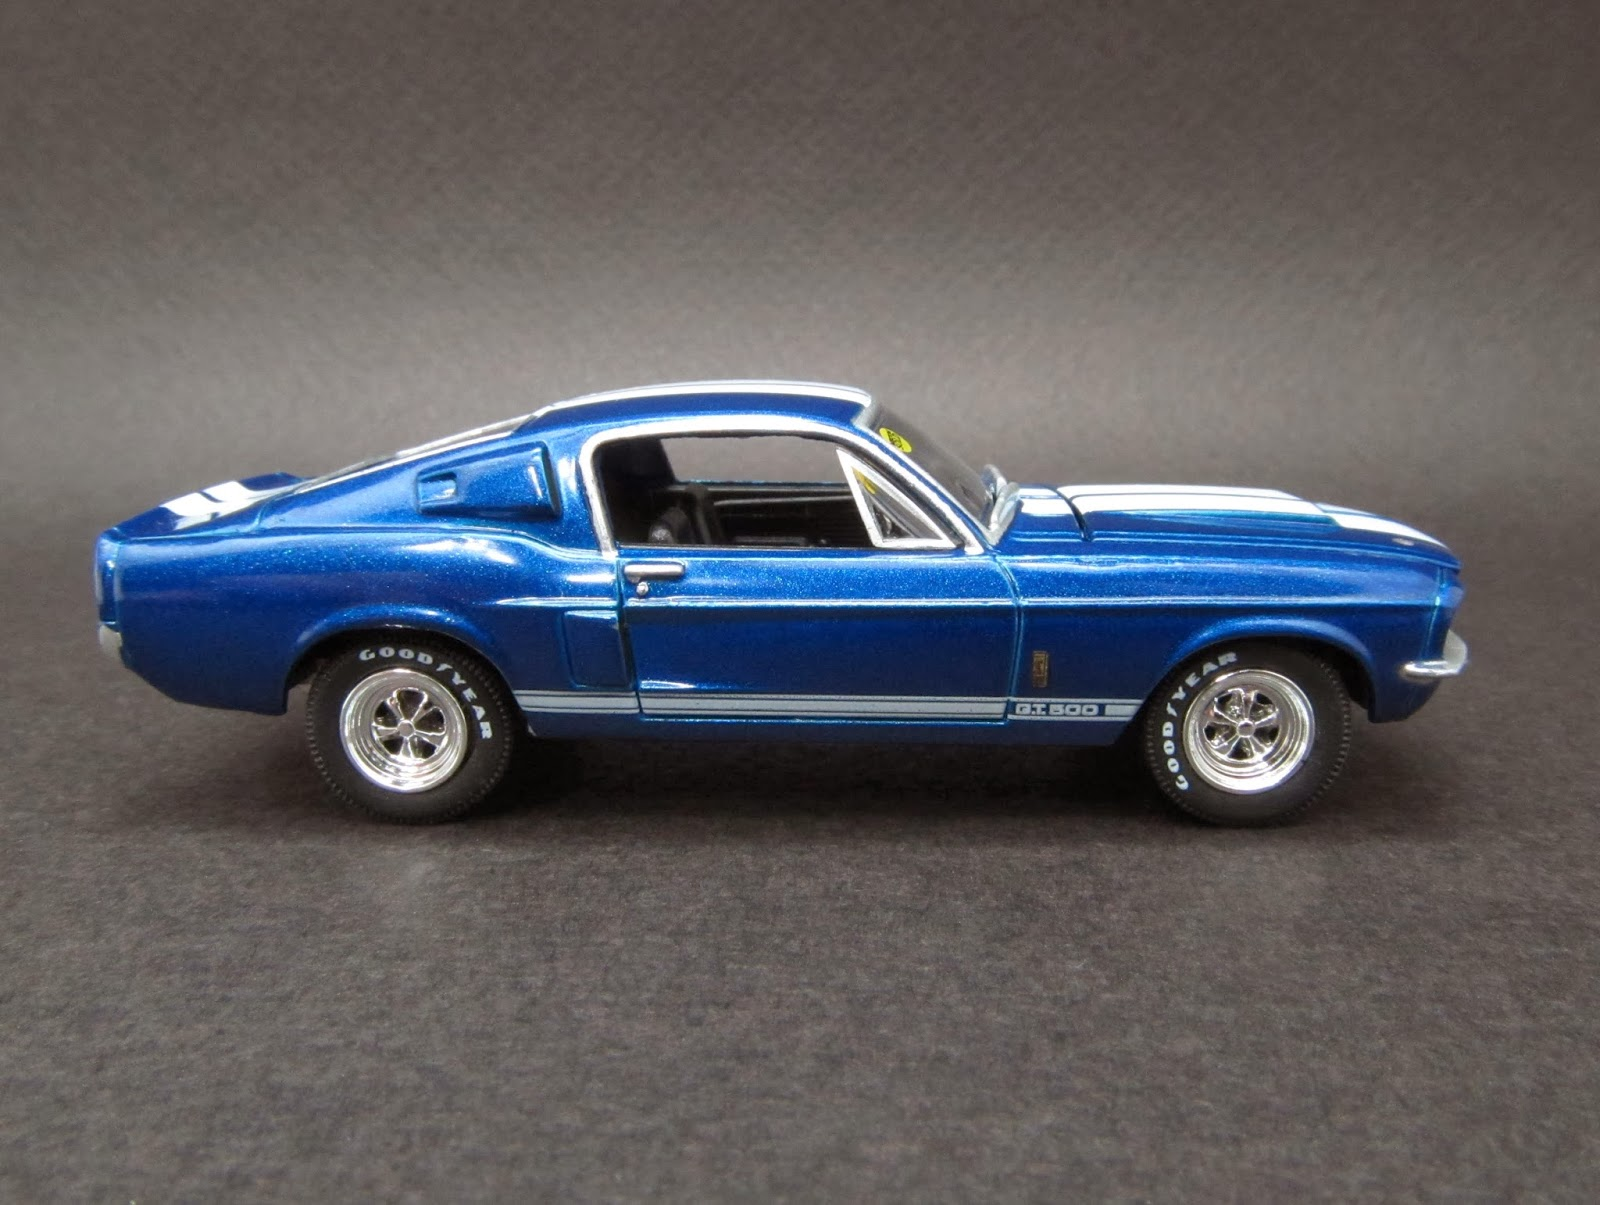 Diecast Hobbist: 1967 Shelby Mustang GT500 Fastback